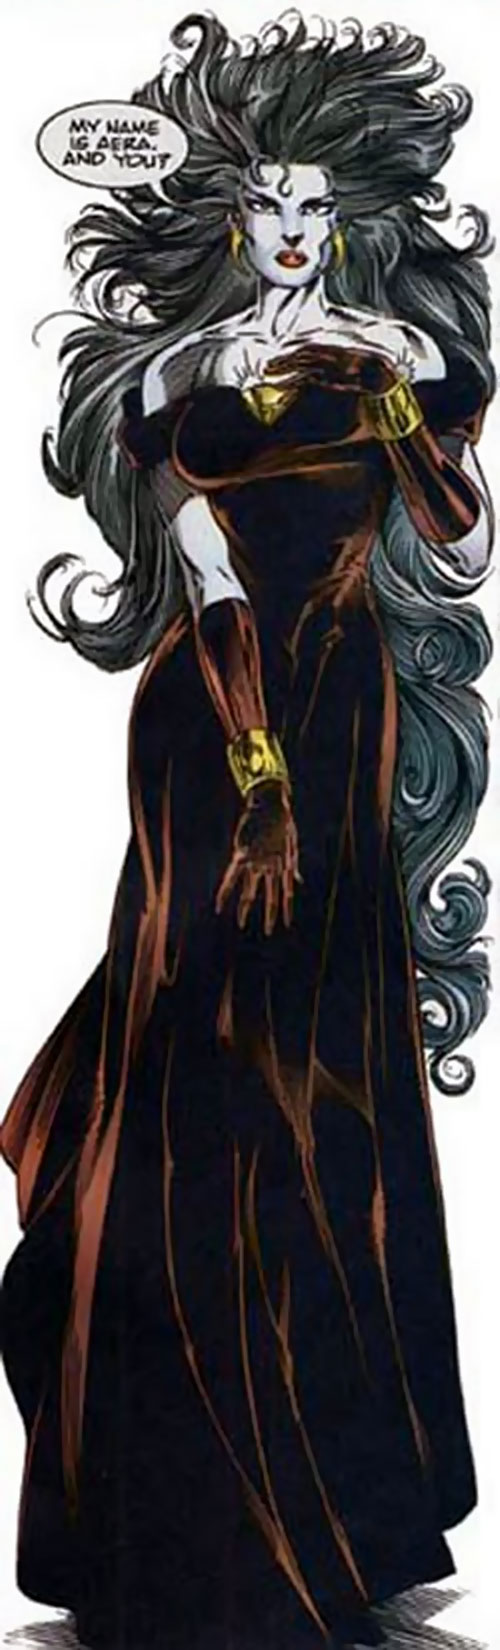 Shadowmage of the Solution (Ultraverse Malibu comics) in an elegant dress